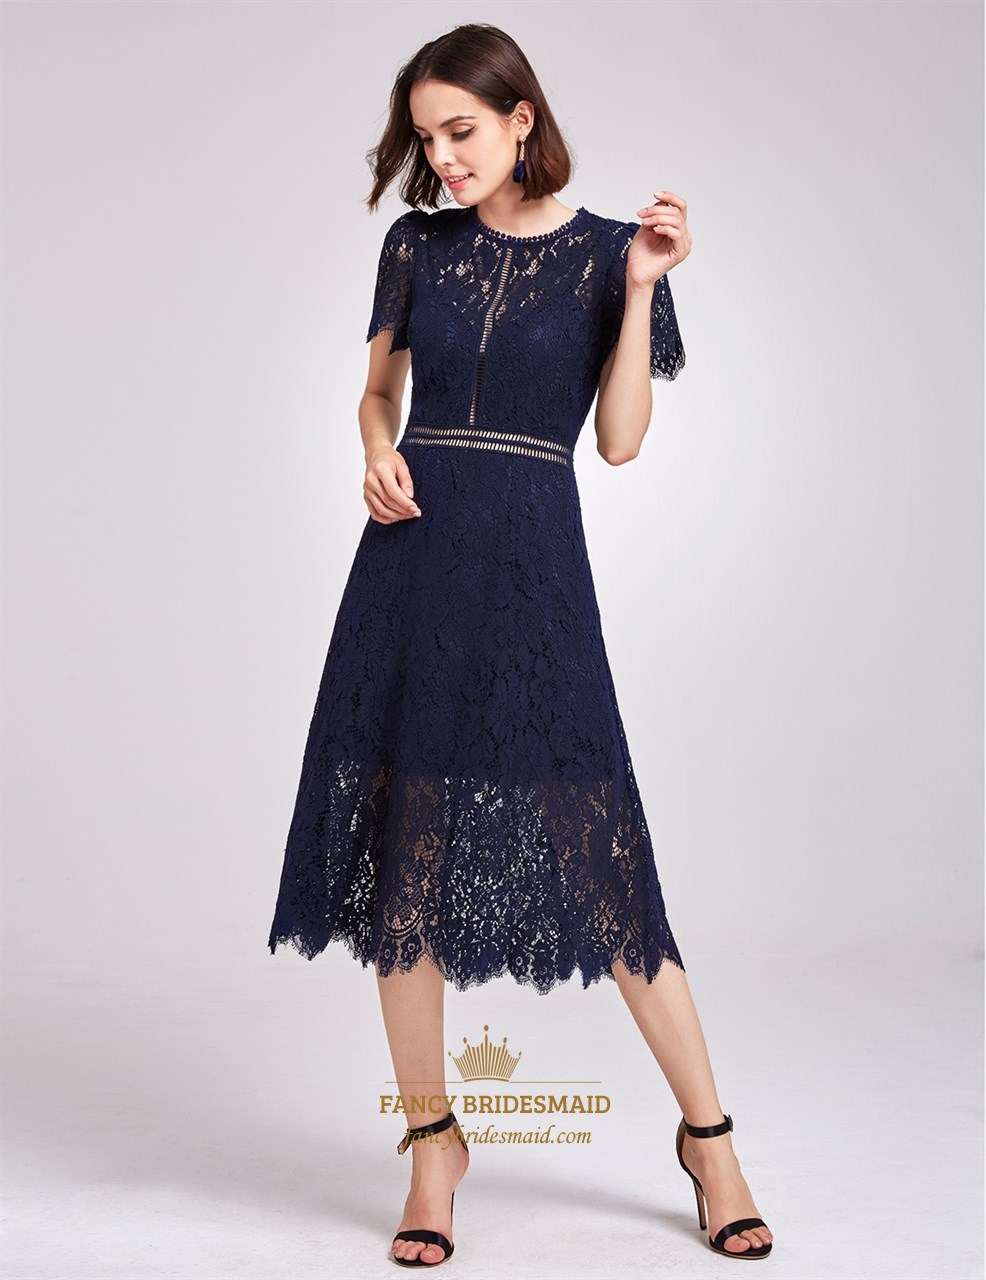 63c21e65d4de Elegant Navy Blue Short Sleeve A-Line Tea Length Lace Cocktail Dress SKU  -FS2934